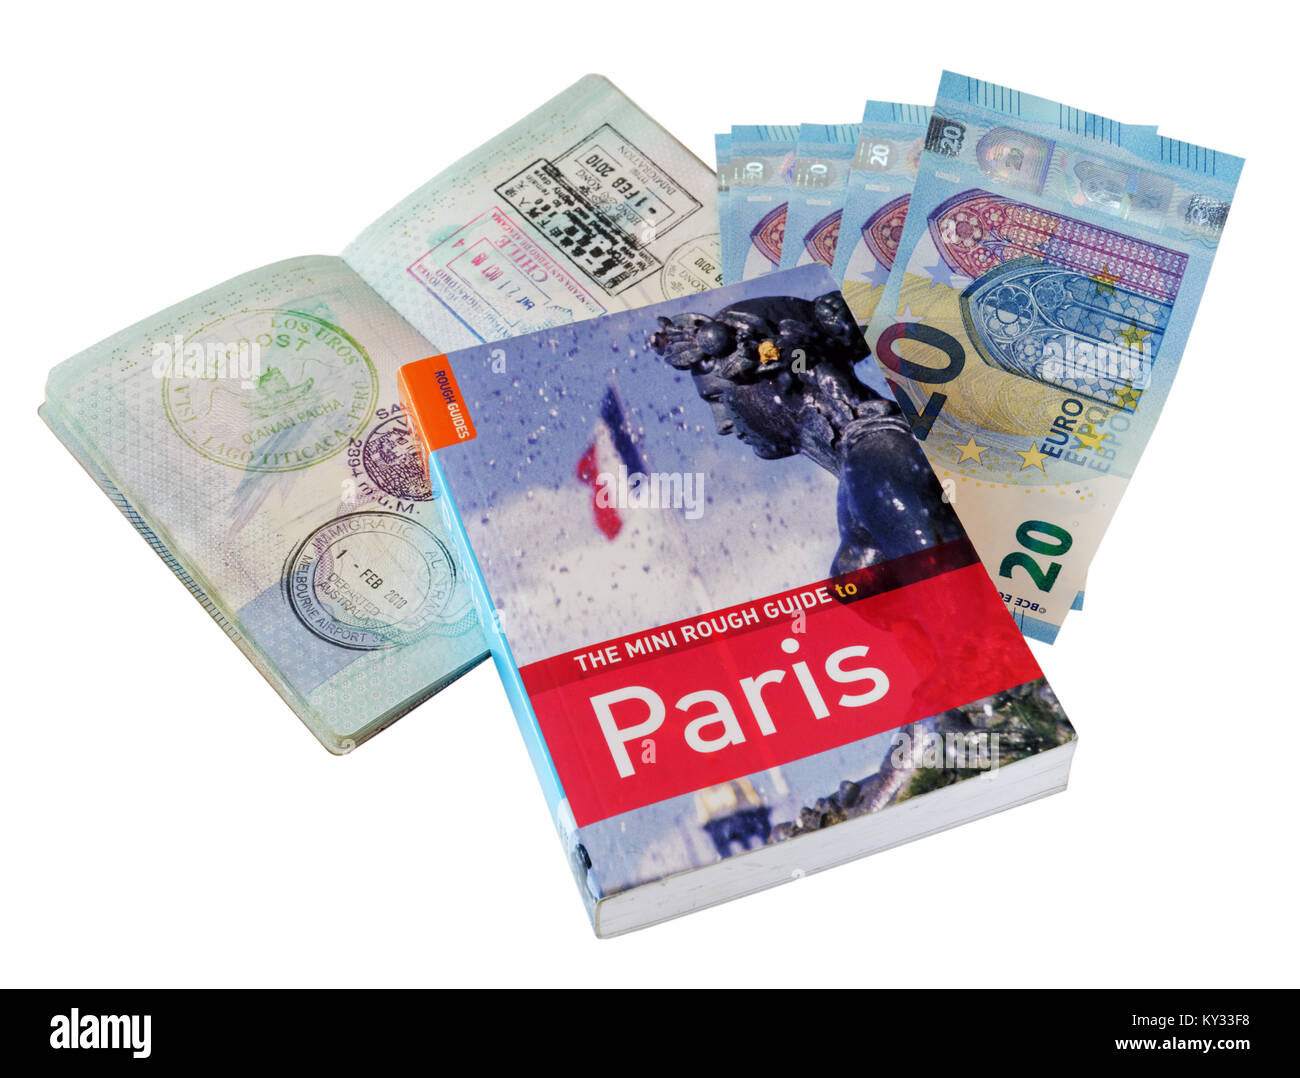 The Rough Guide guide to Paris, with a UK passport and Euro currency - Stock Image